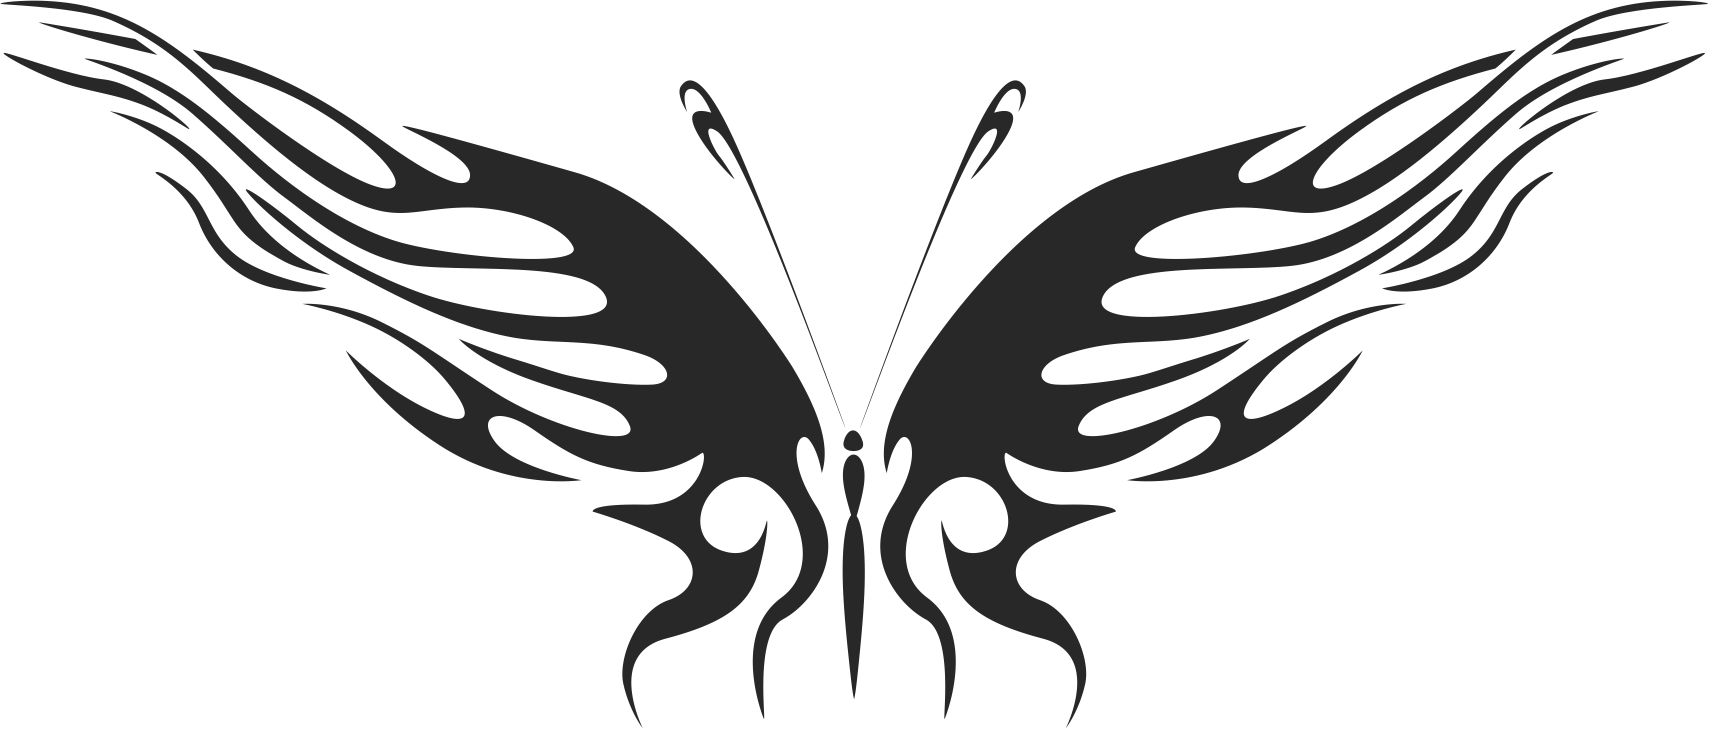 Butterfly Silhouette Tattoo Free CDR Vectors Art